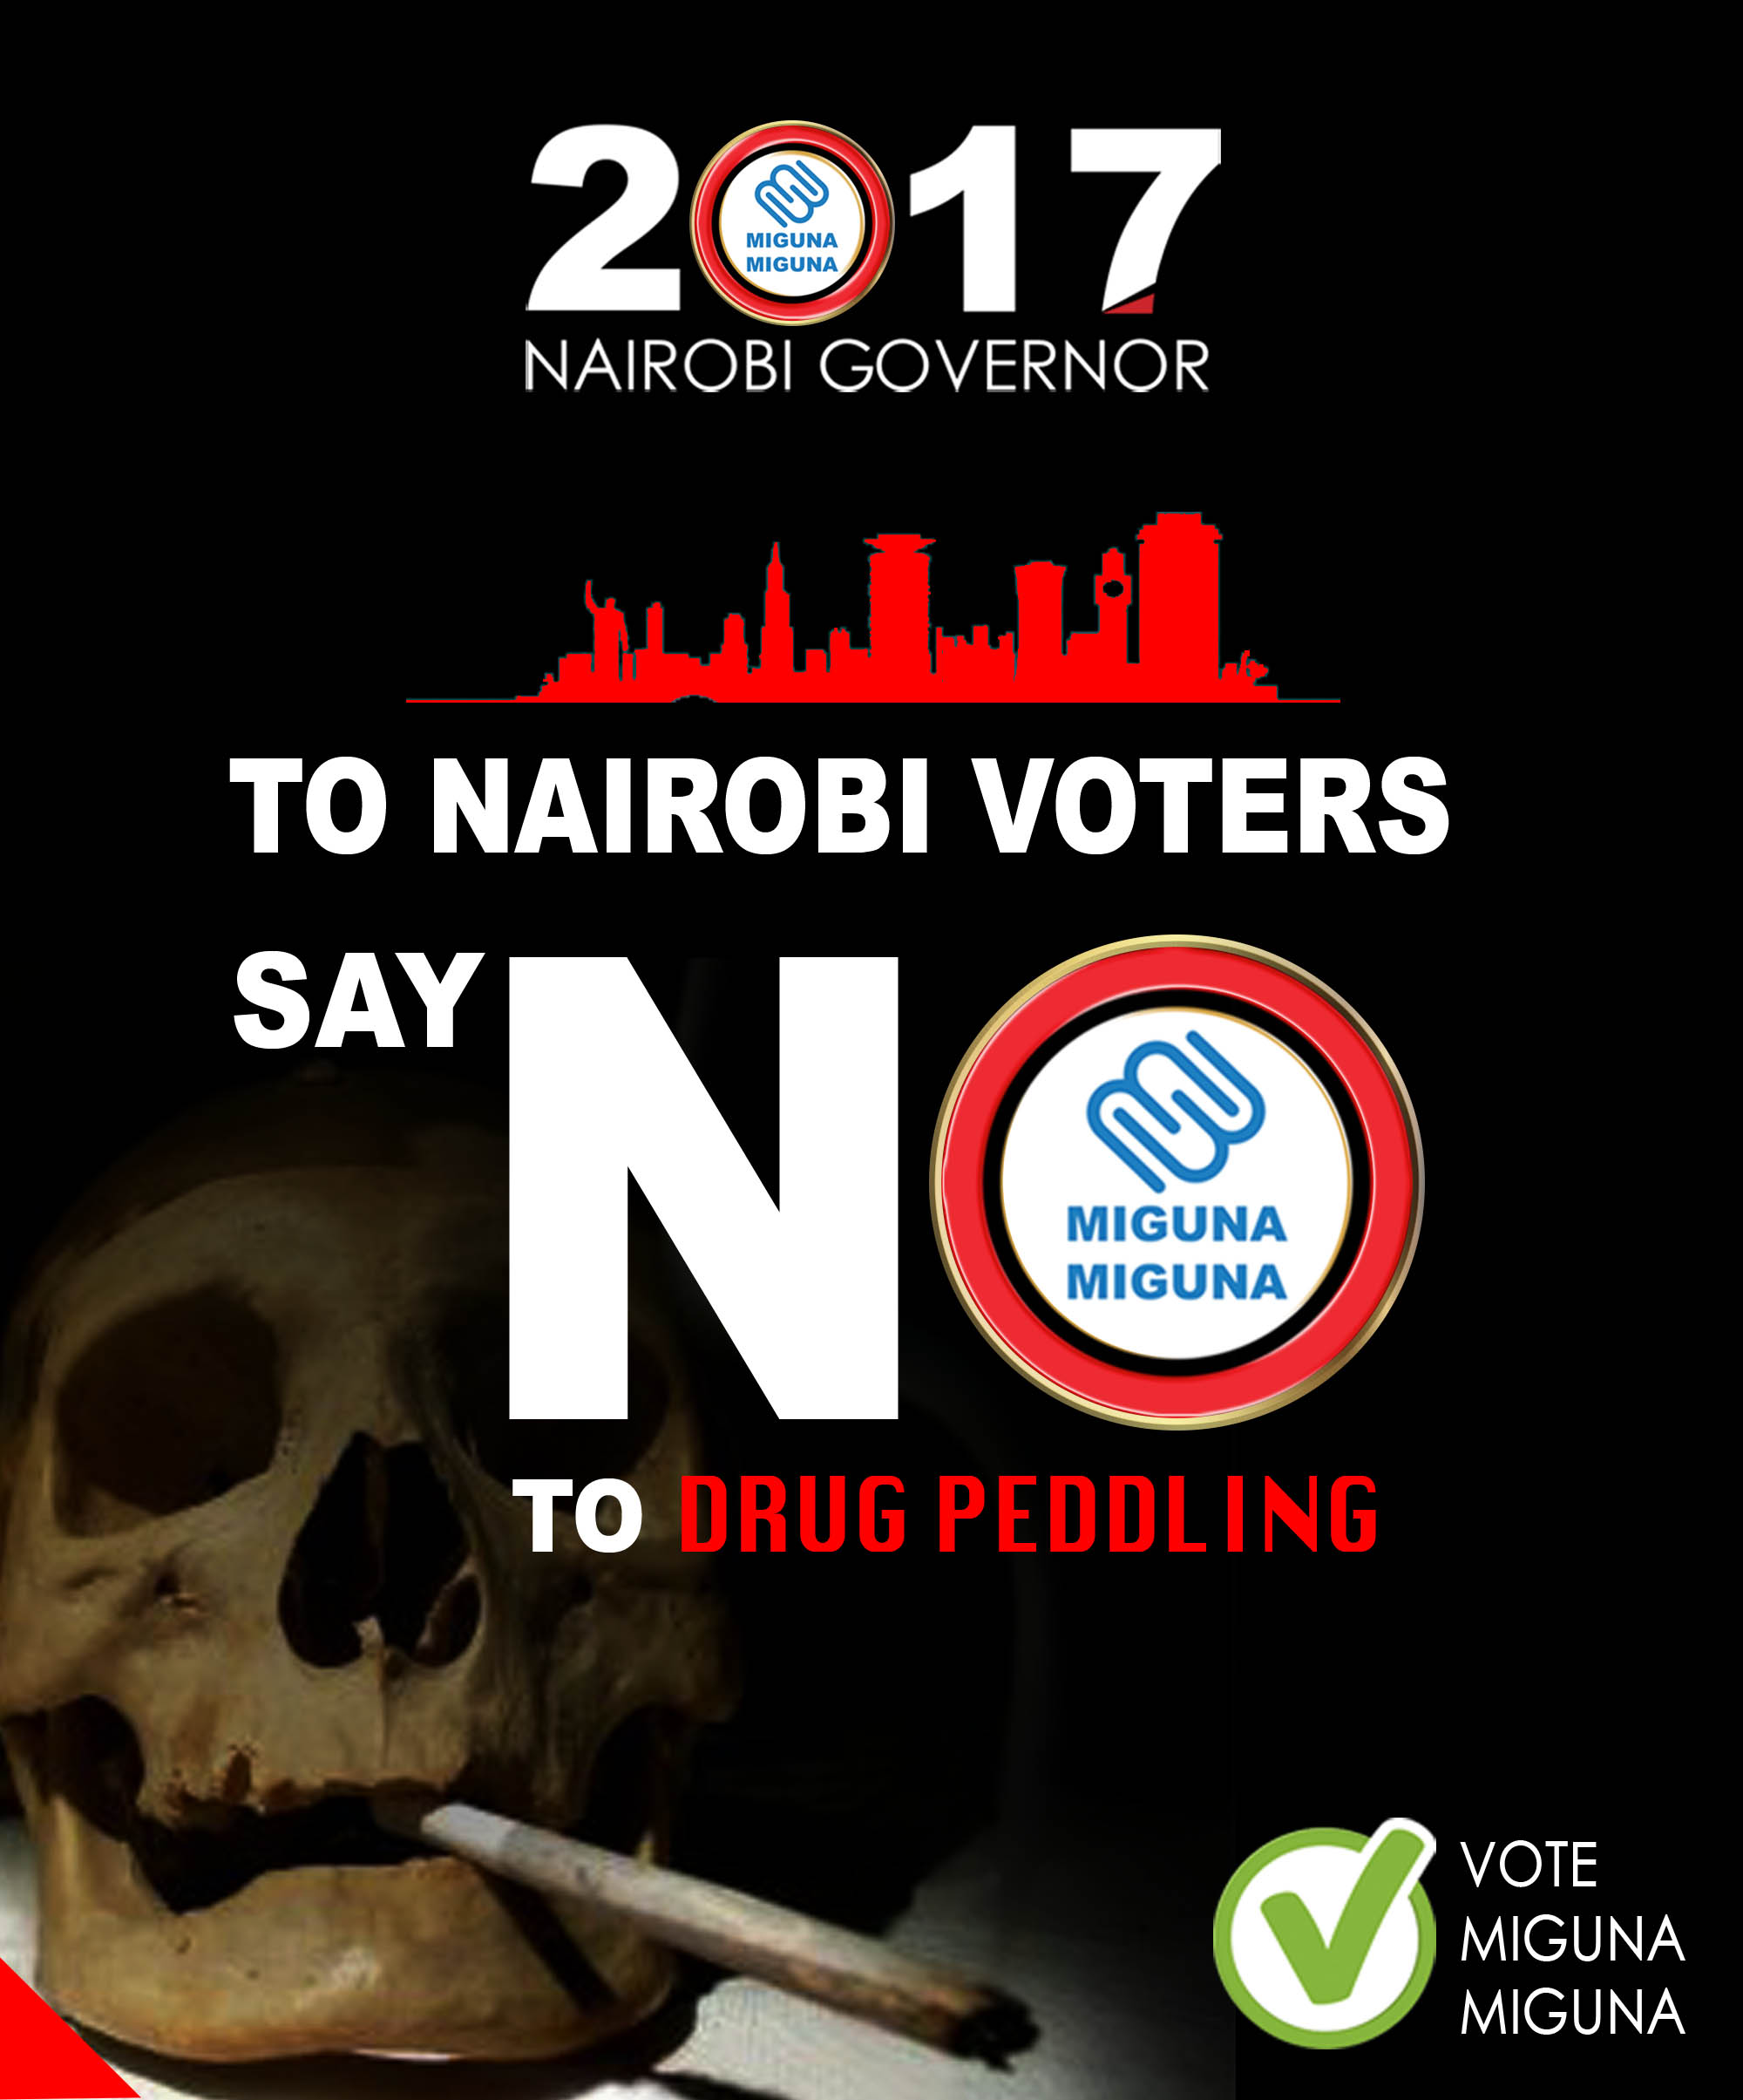 Say NO to drug peddling.